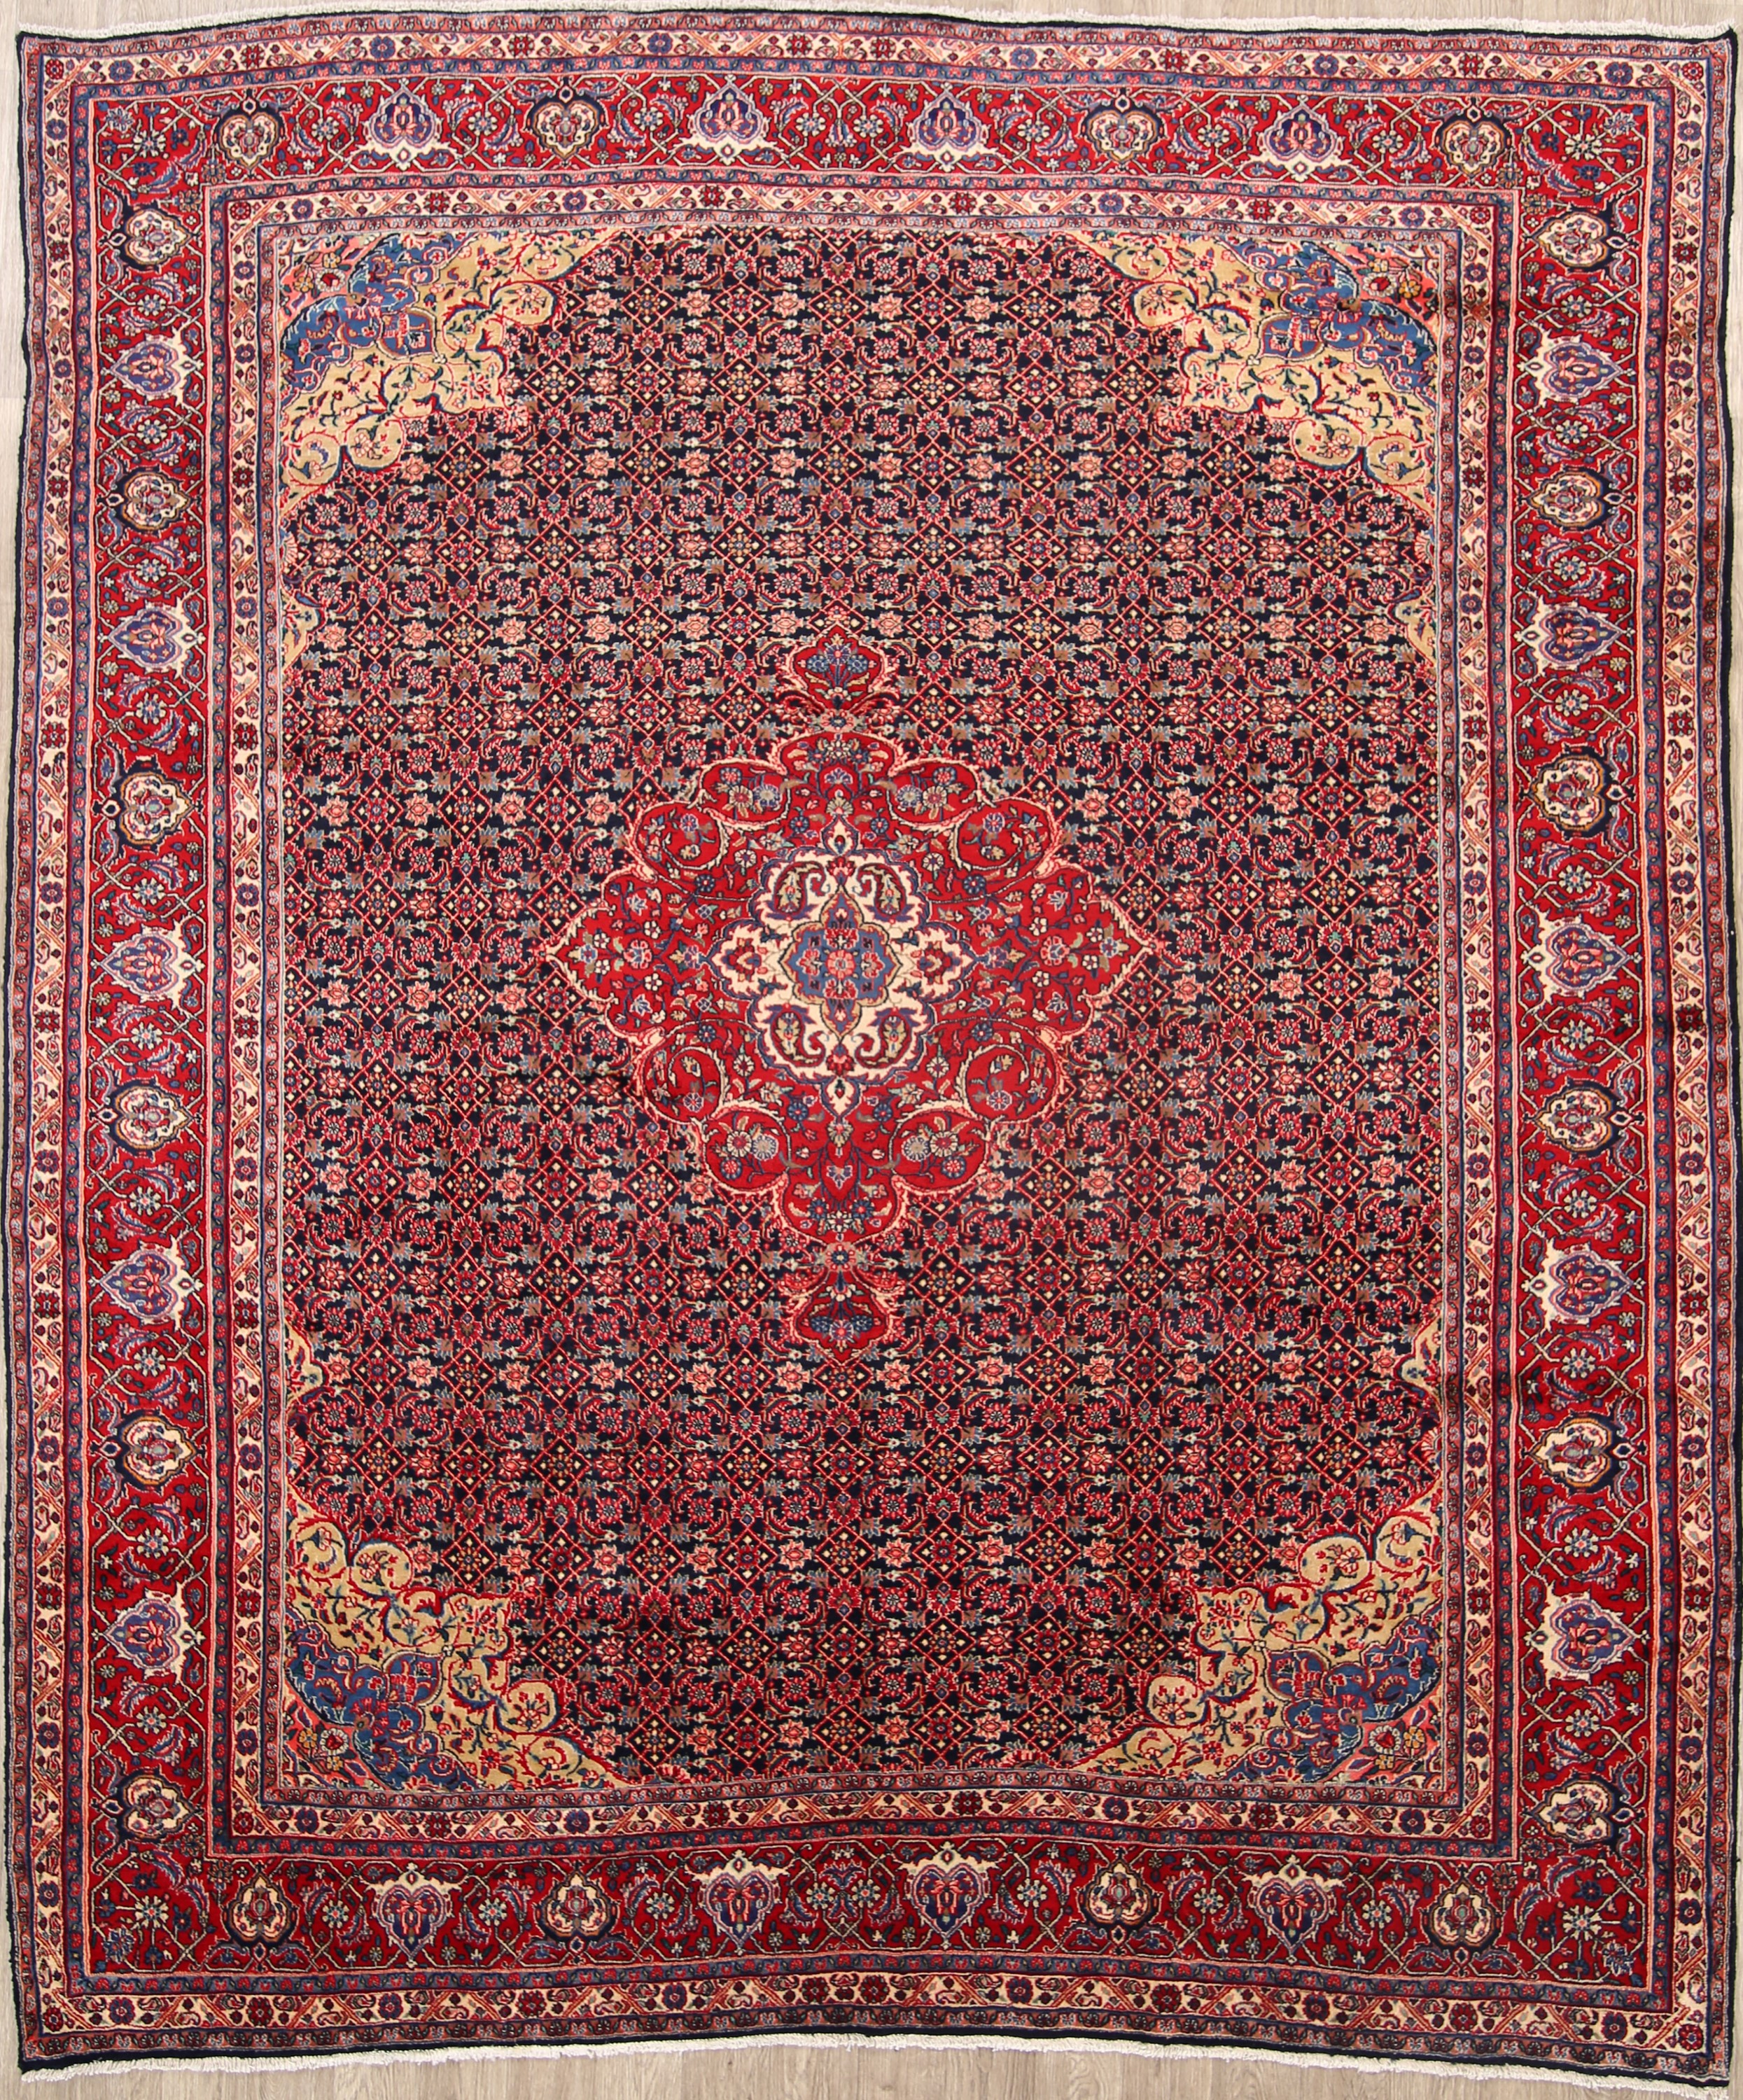 Persian Rugs From Iran: 9x12 Bidjar Persian Area Rug